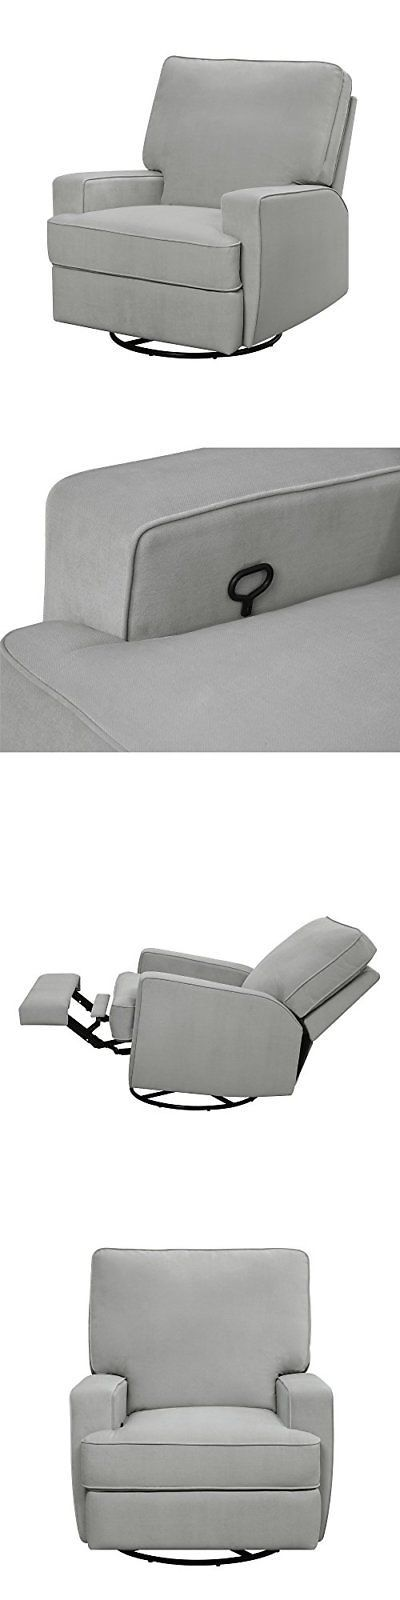 Baby Relax Rylan Swivel Gliding Recliner Gray Baby Supplies